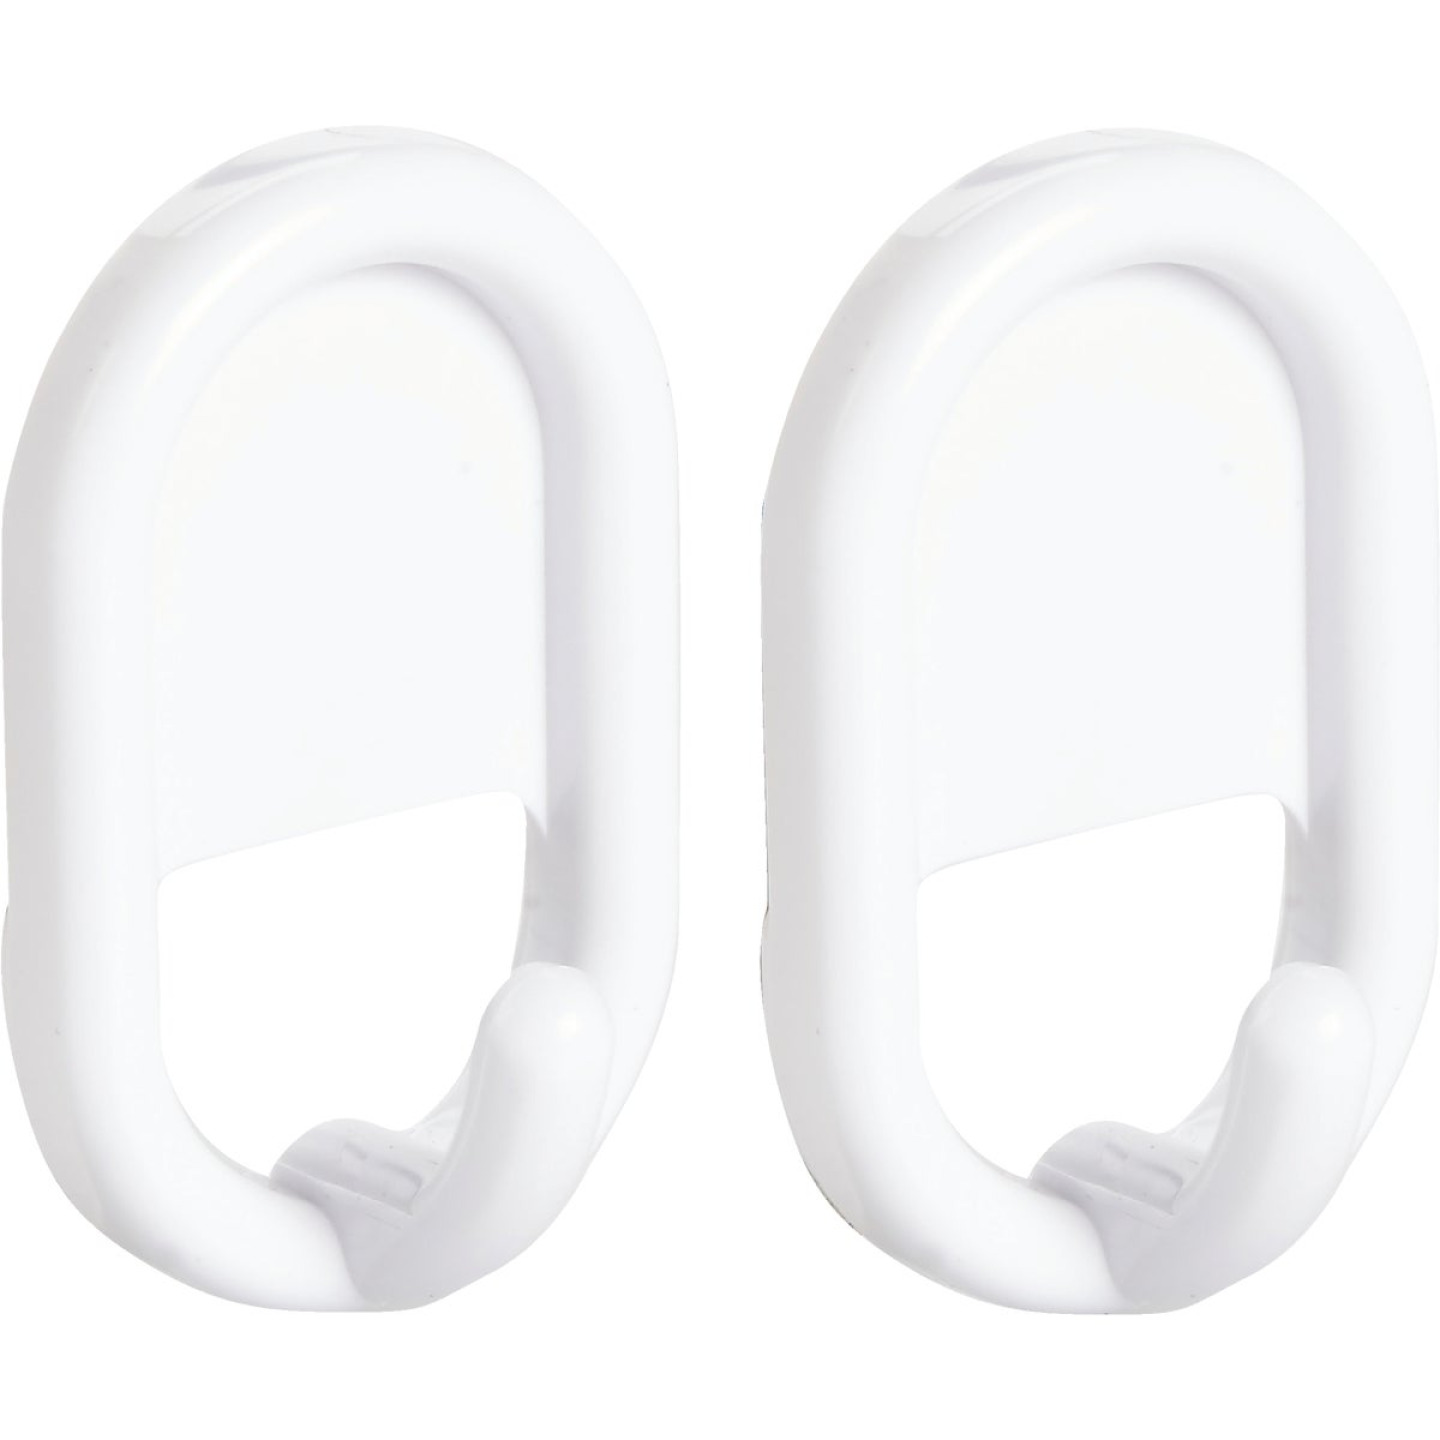 InterDesign Utility White Plastic Adhesive Hook (2-Pack) Image 1